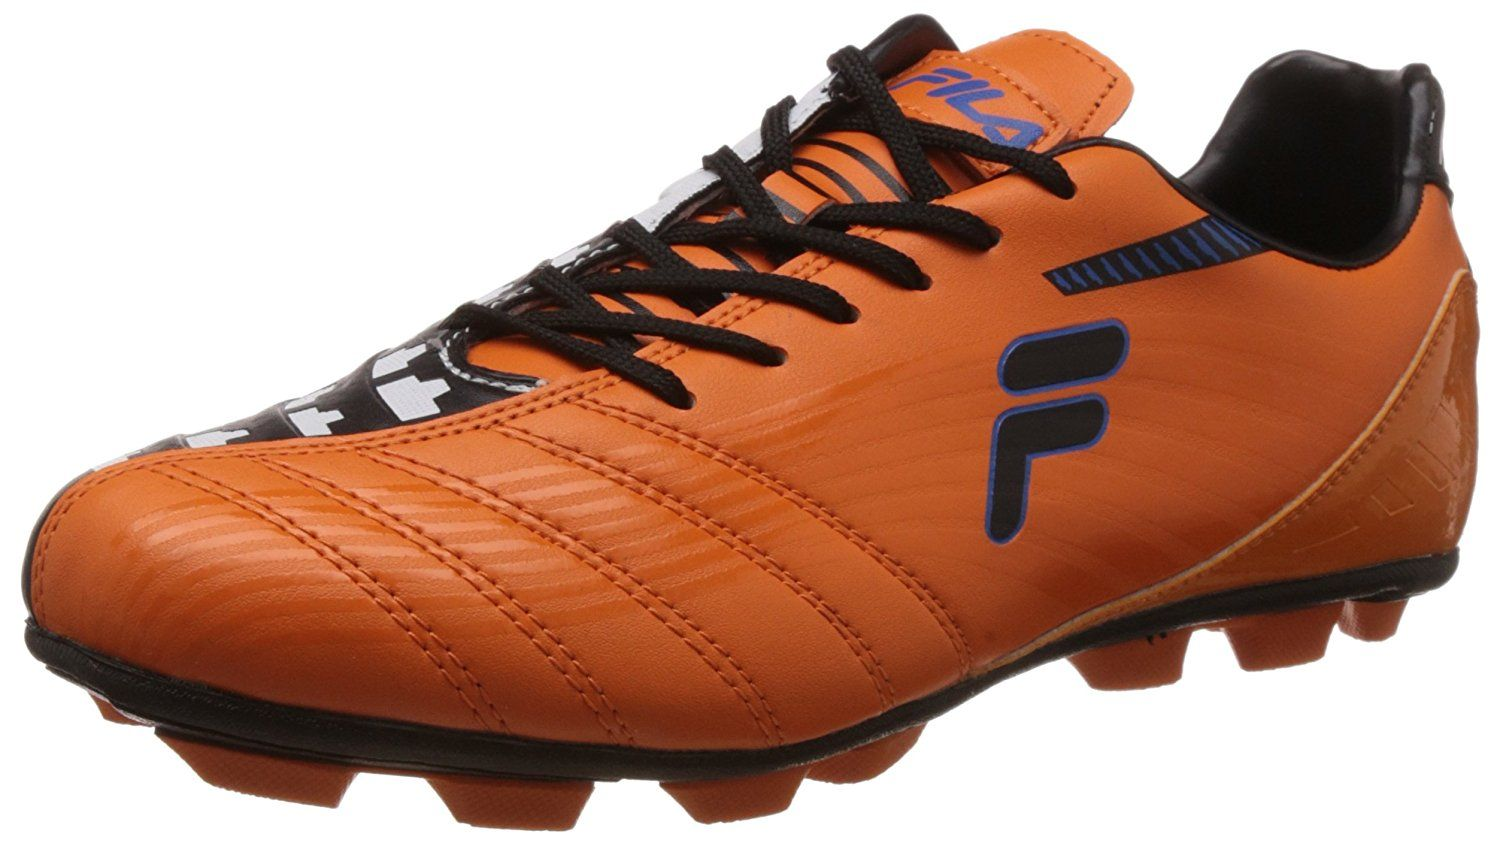 b8759d57f9b Fila Men s Restart Football Boots  Buy Online at Low Prices in India -  Amazon.in